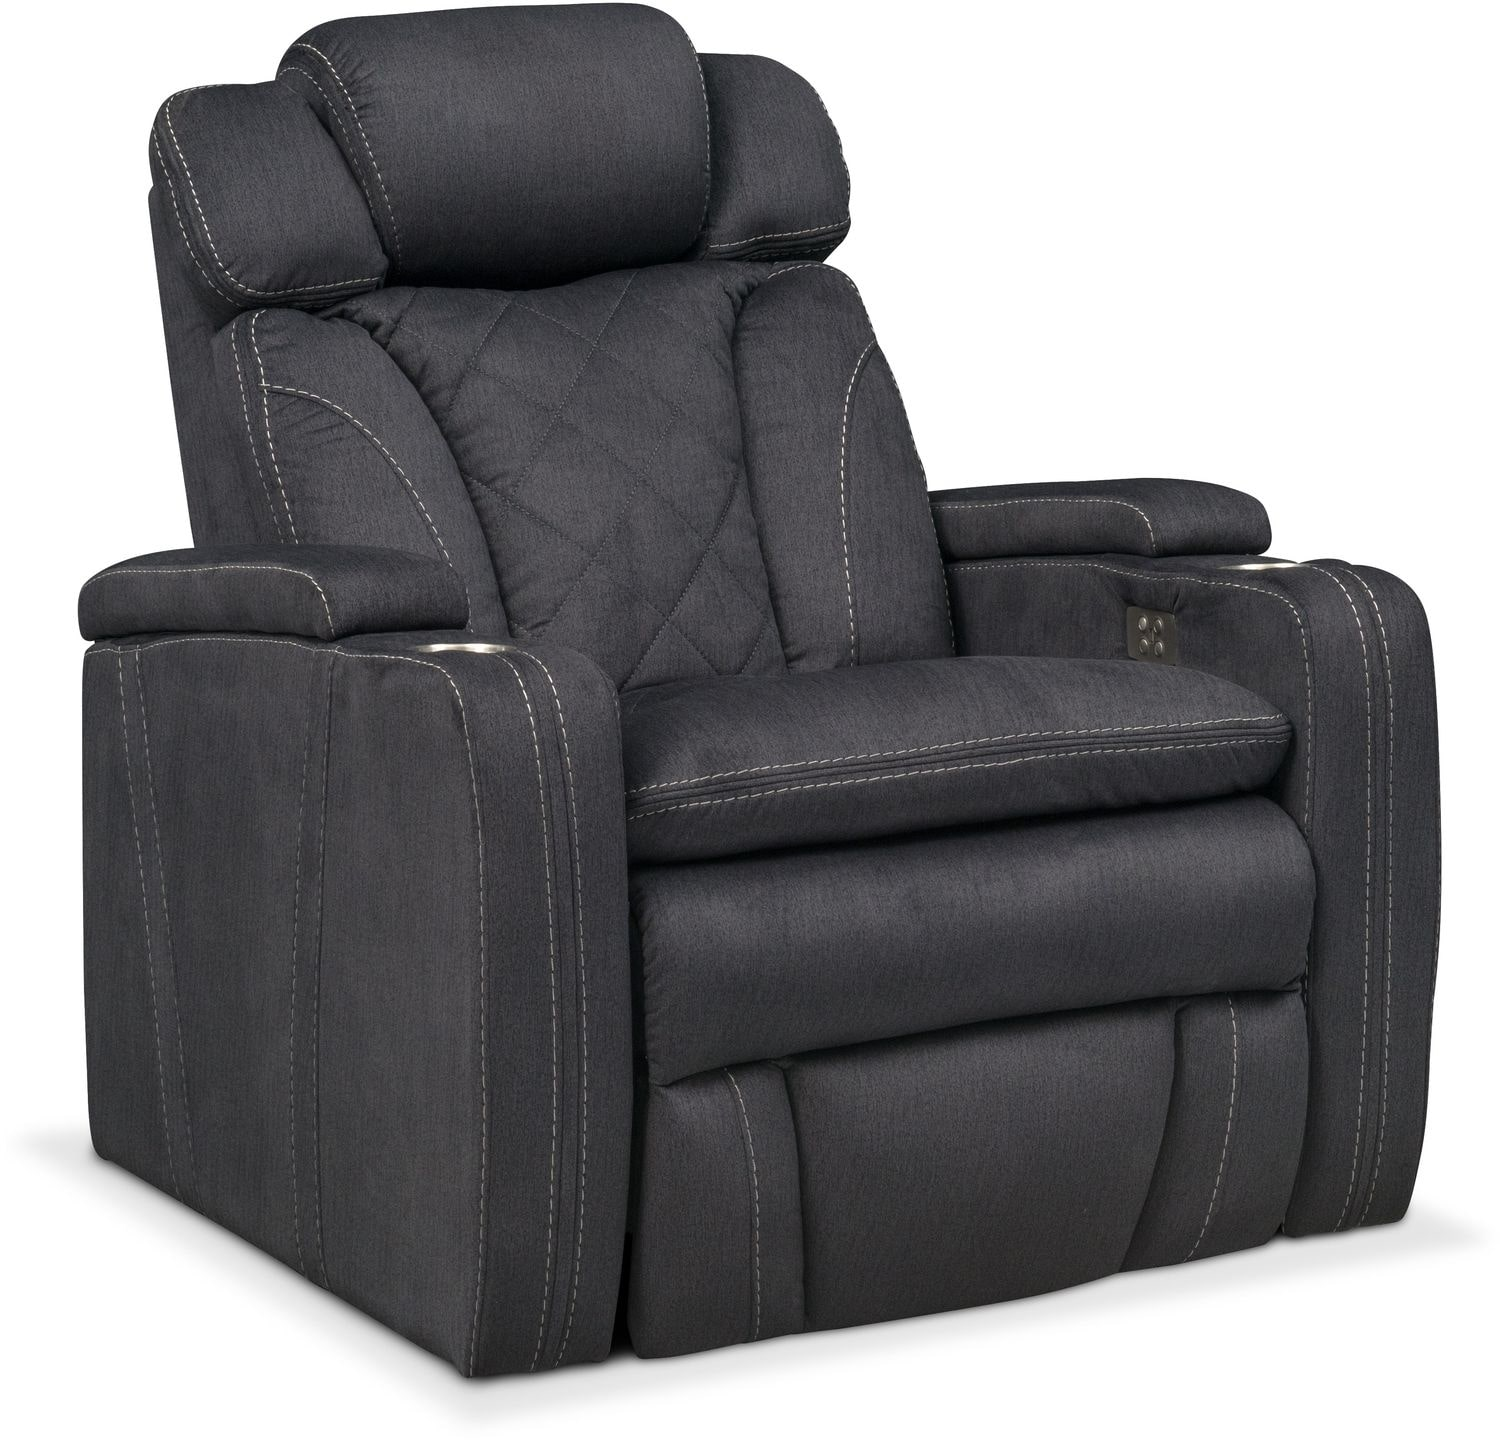 Fiero Power Recliner Charcoal Value City Furniture And